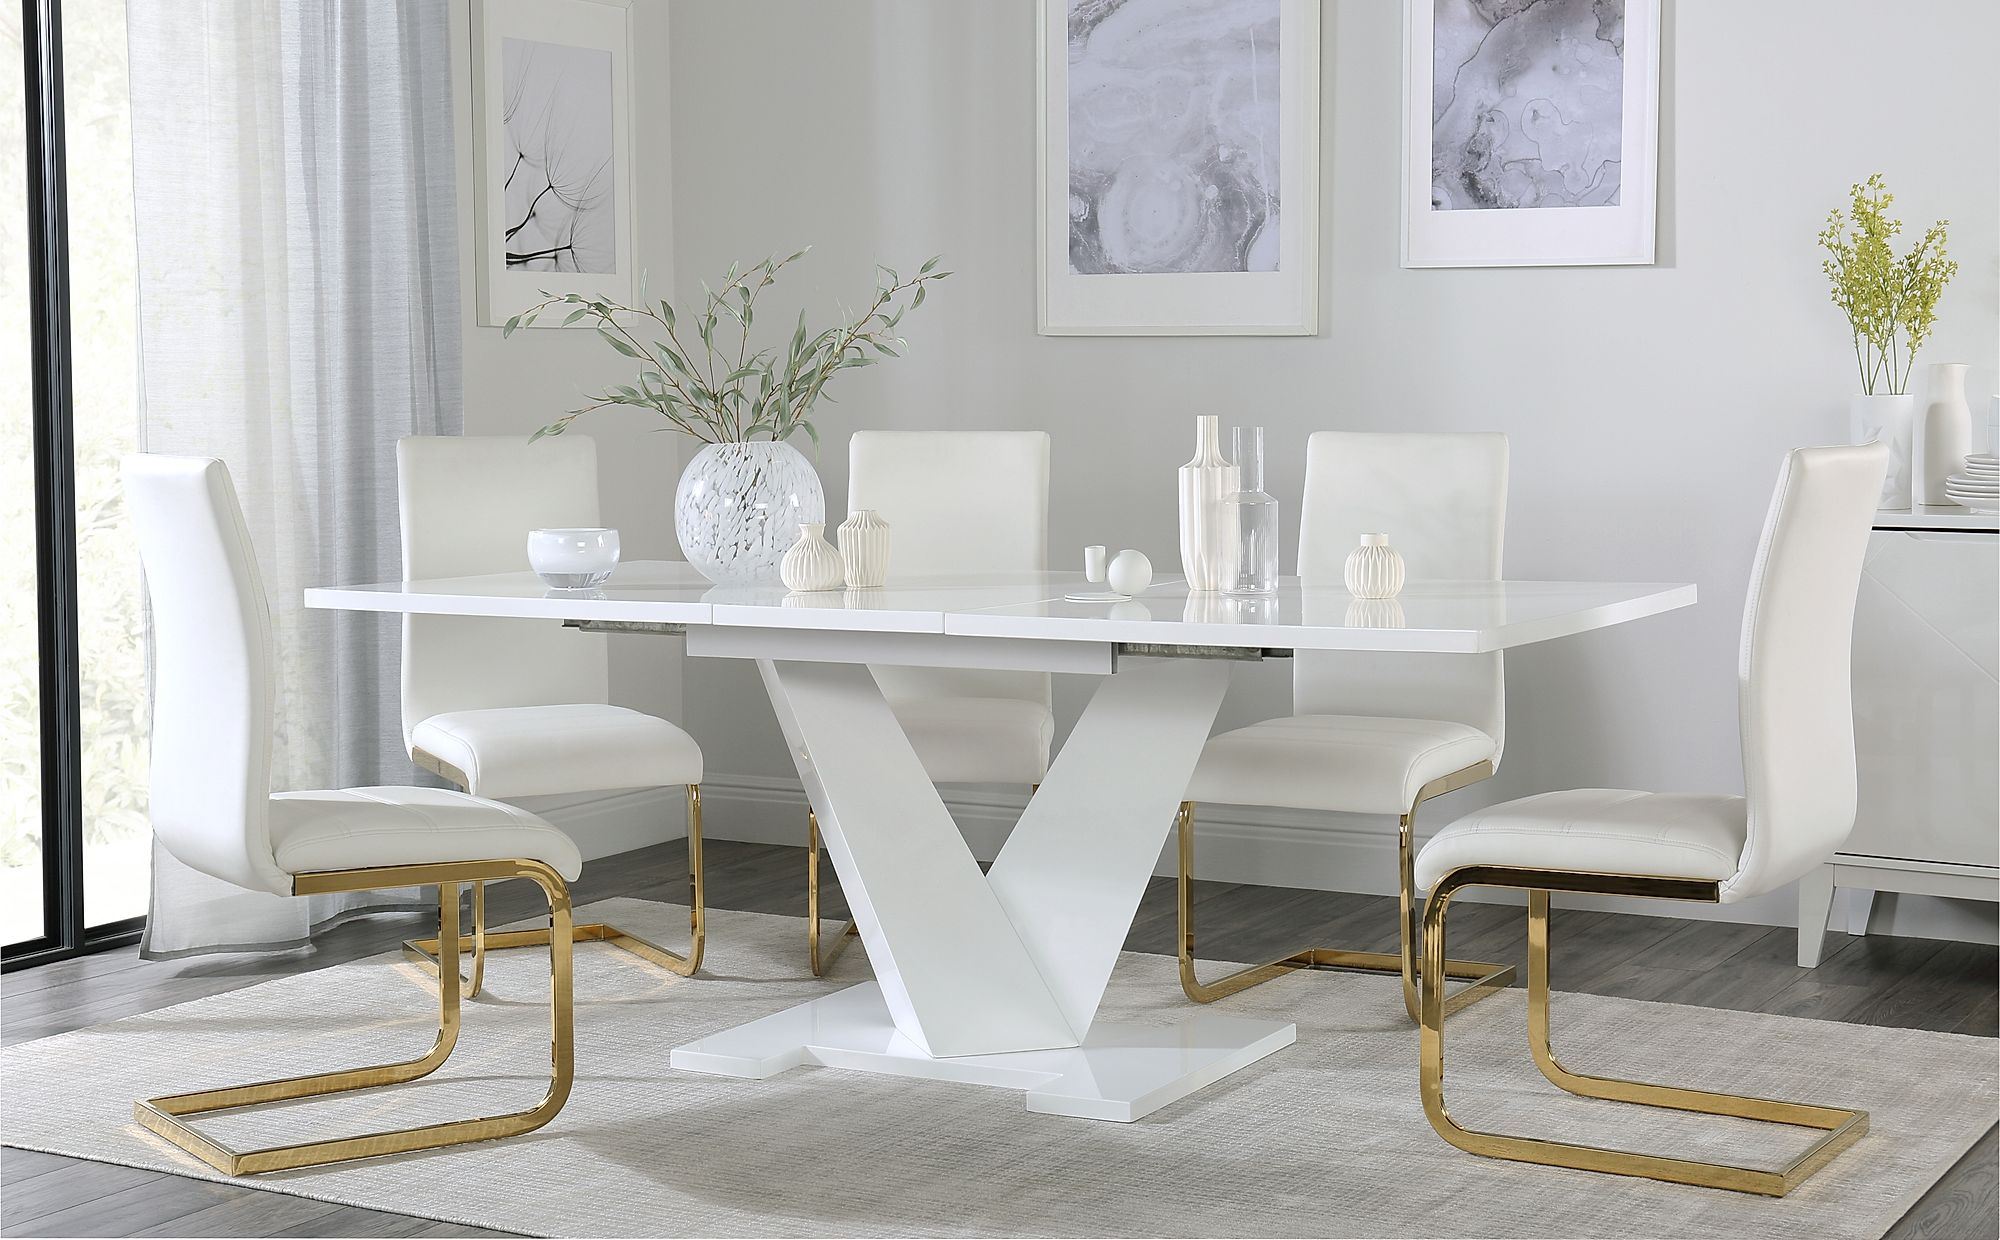 White And Gold Dining Chairs: Turin White High Gloss Extending Dining Table With 6 Perth